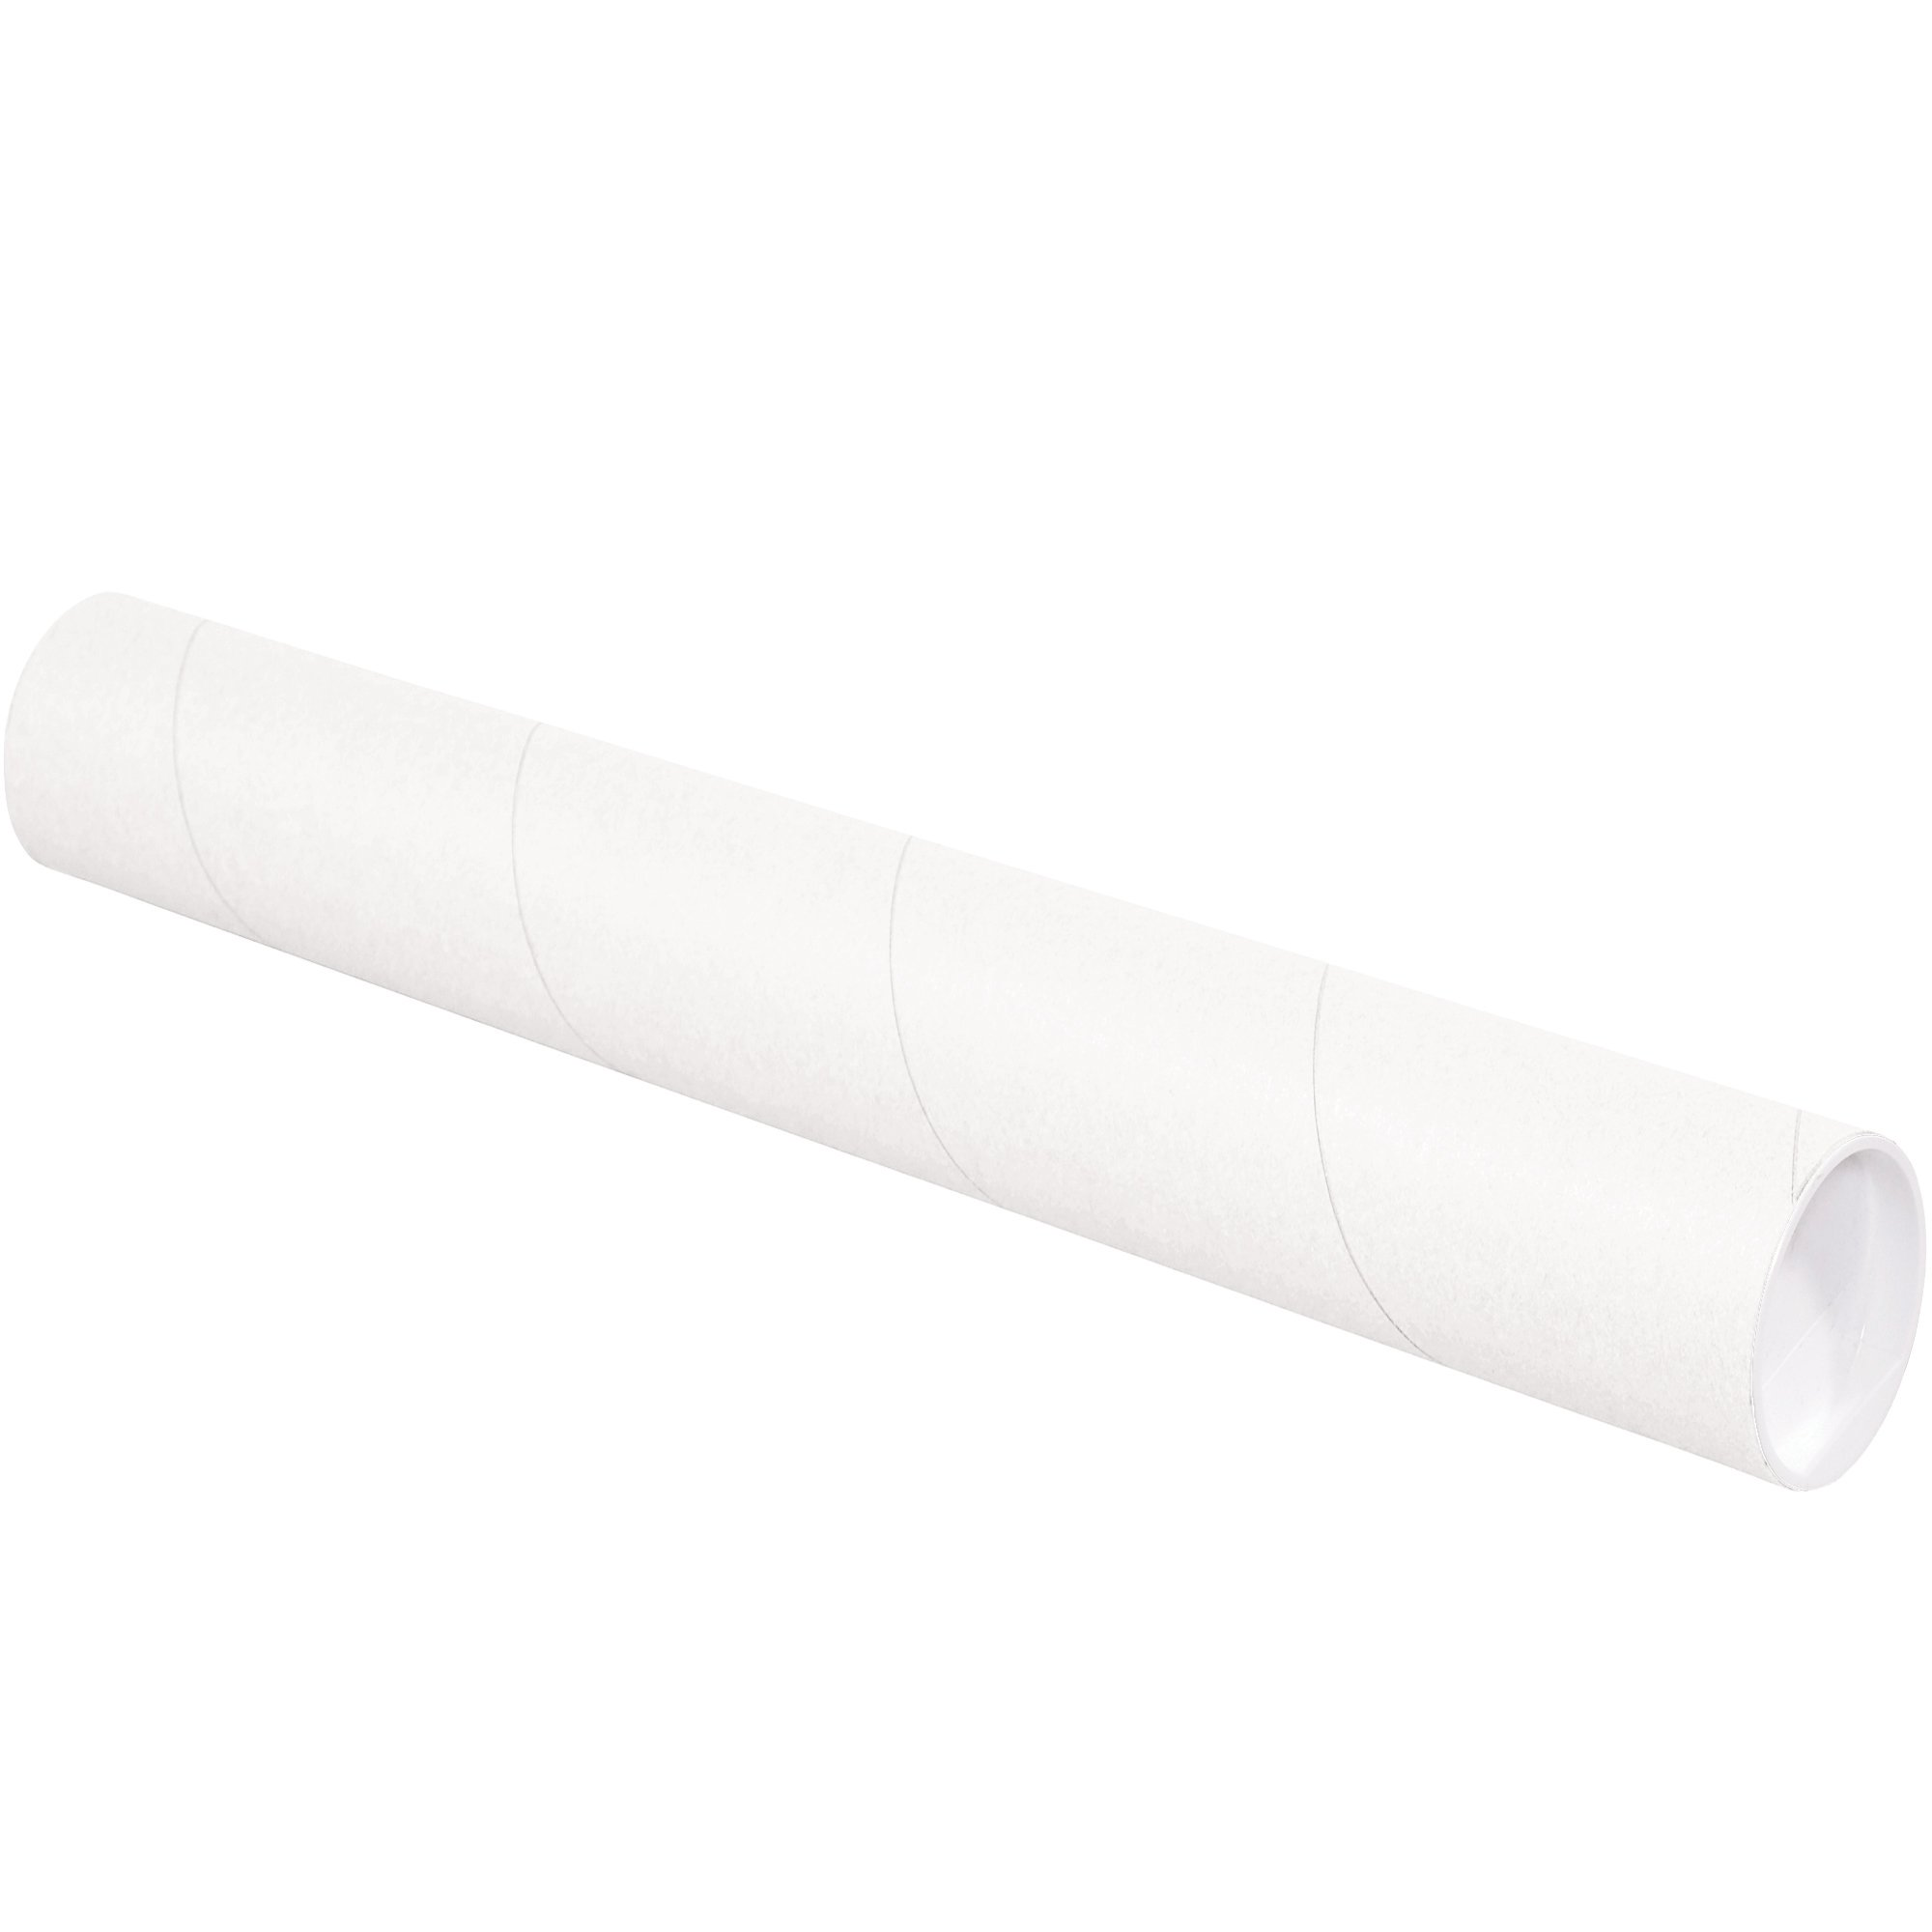 Aviditi P3015W Mailing Tubes with Caps, 3'' x 15'', White (Pack of 24) by Aviditi